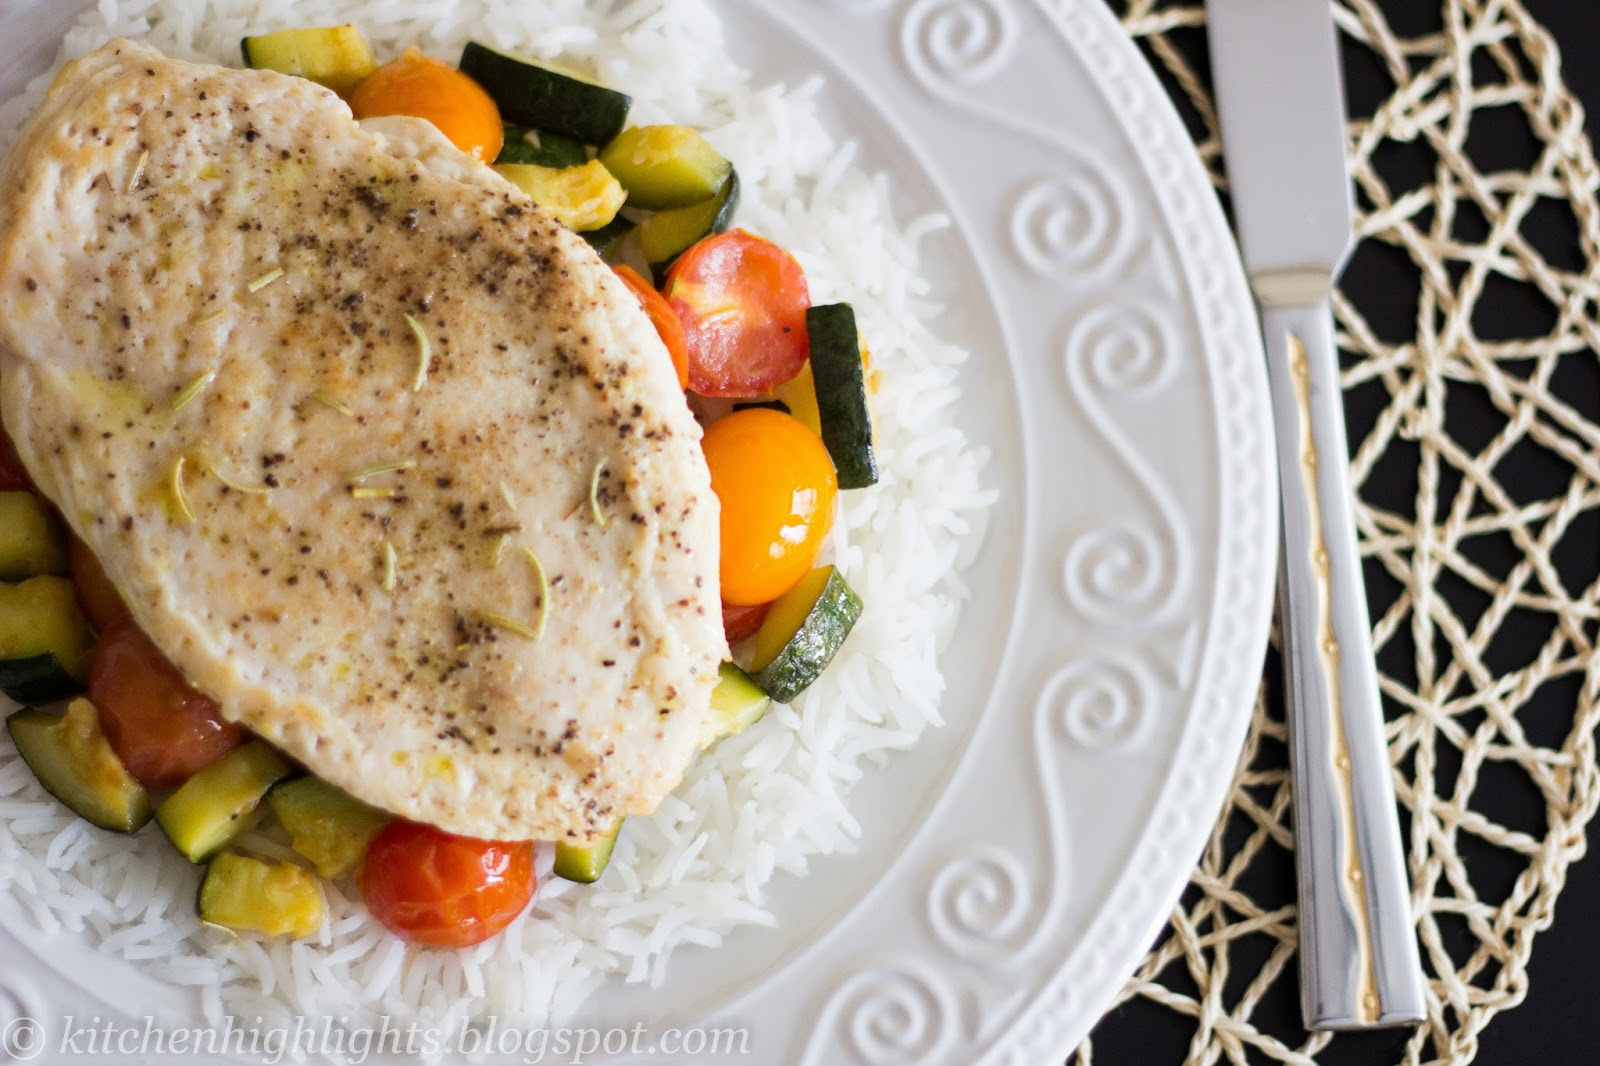 If you are looking for a delicious healthy meal, chicken with sauteed vegetables can be a wonderful option